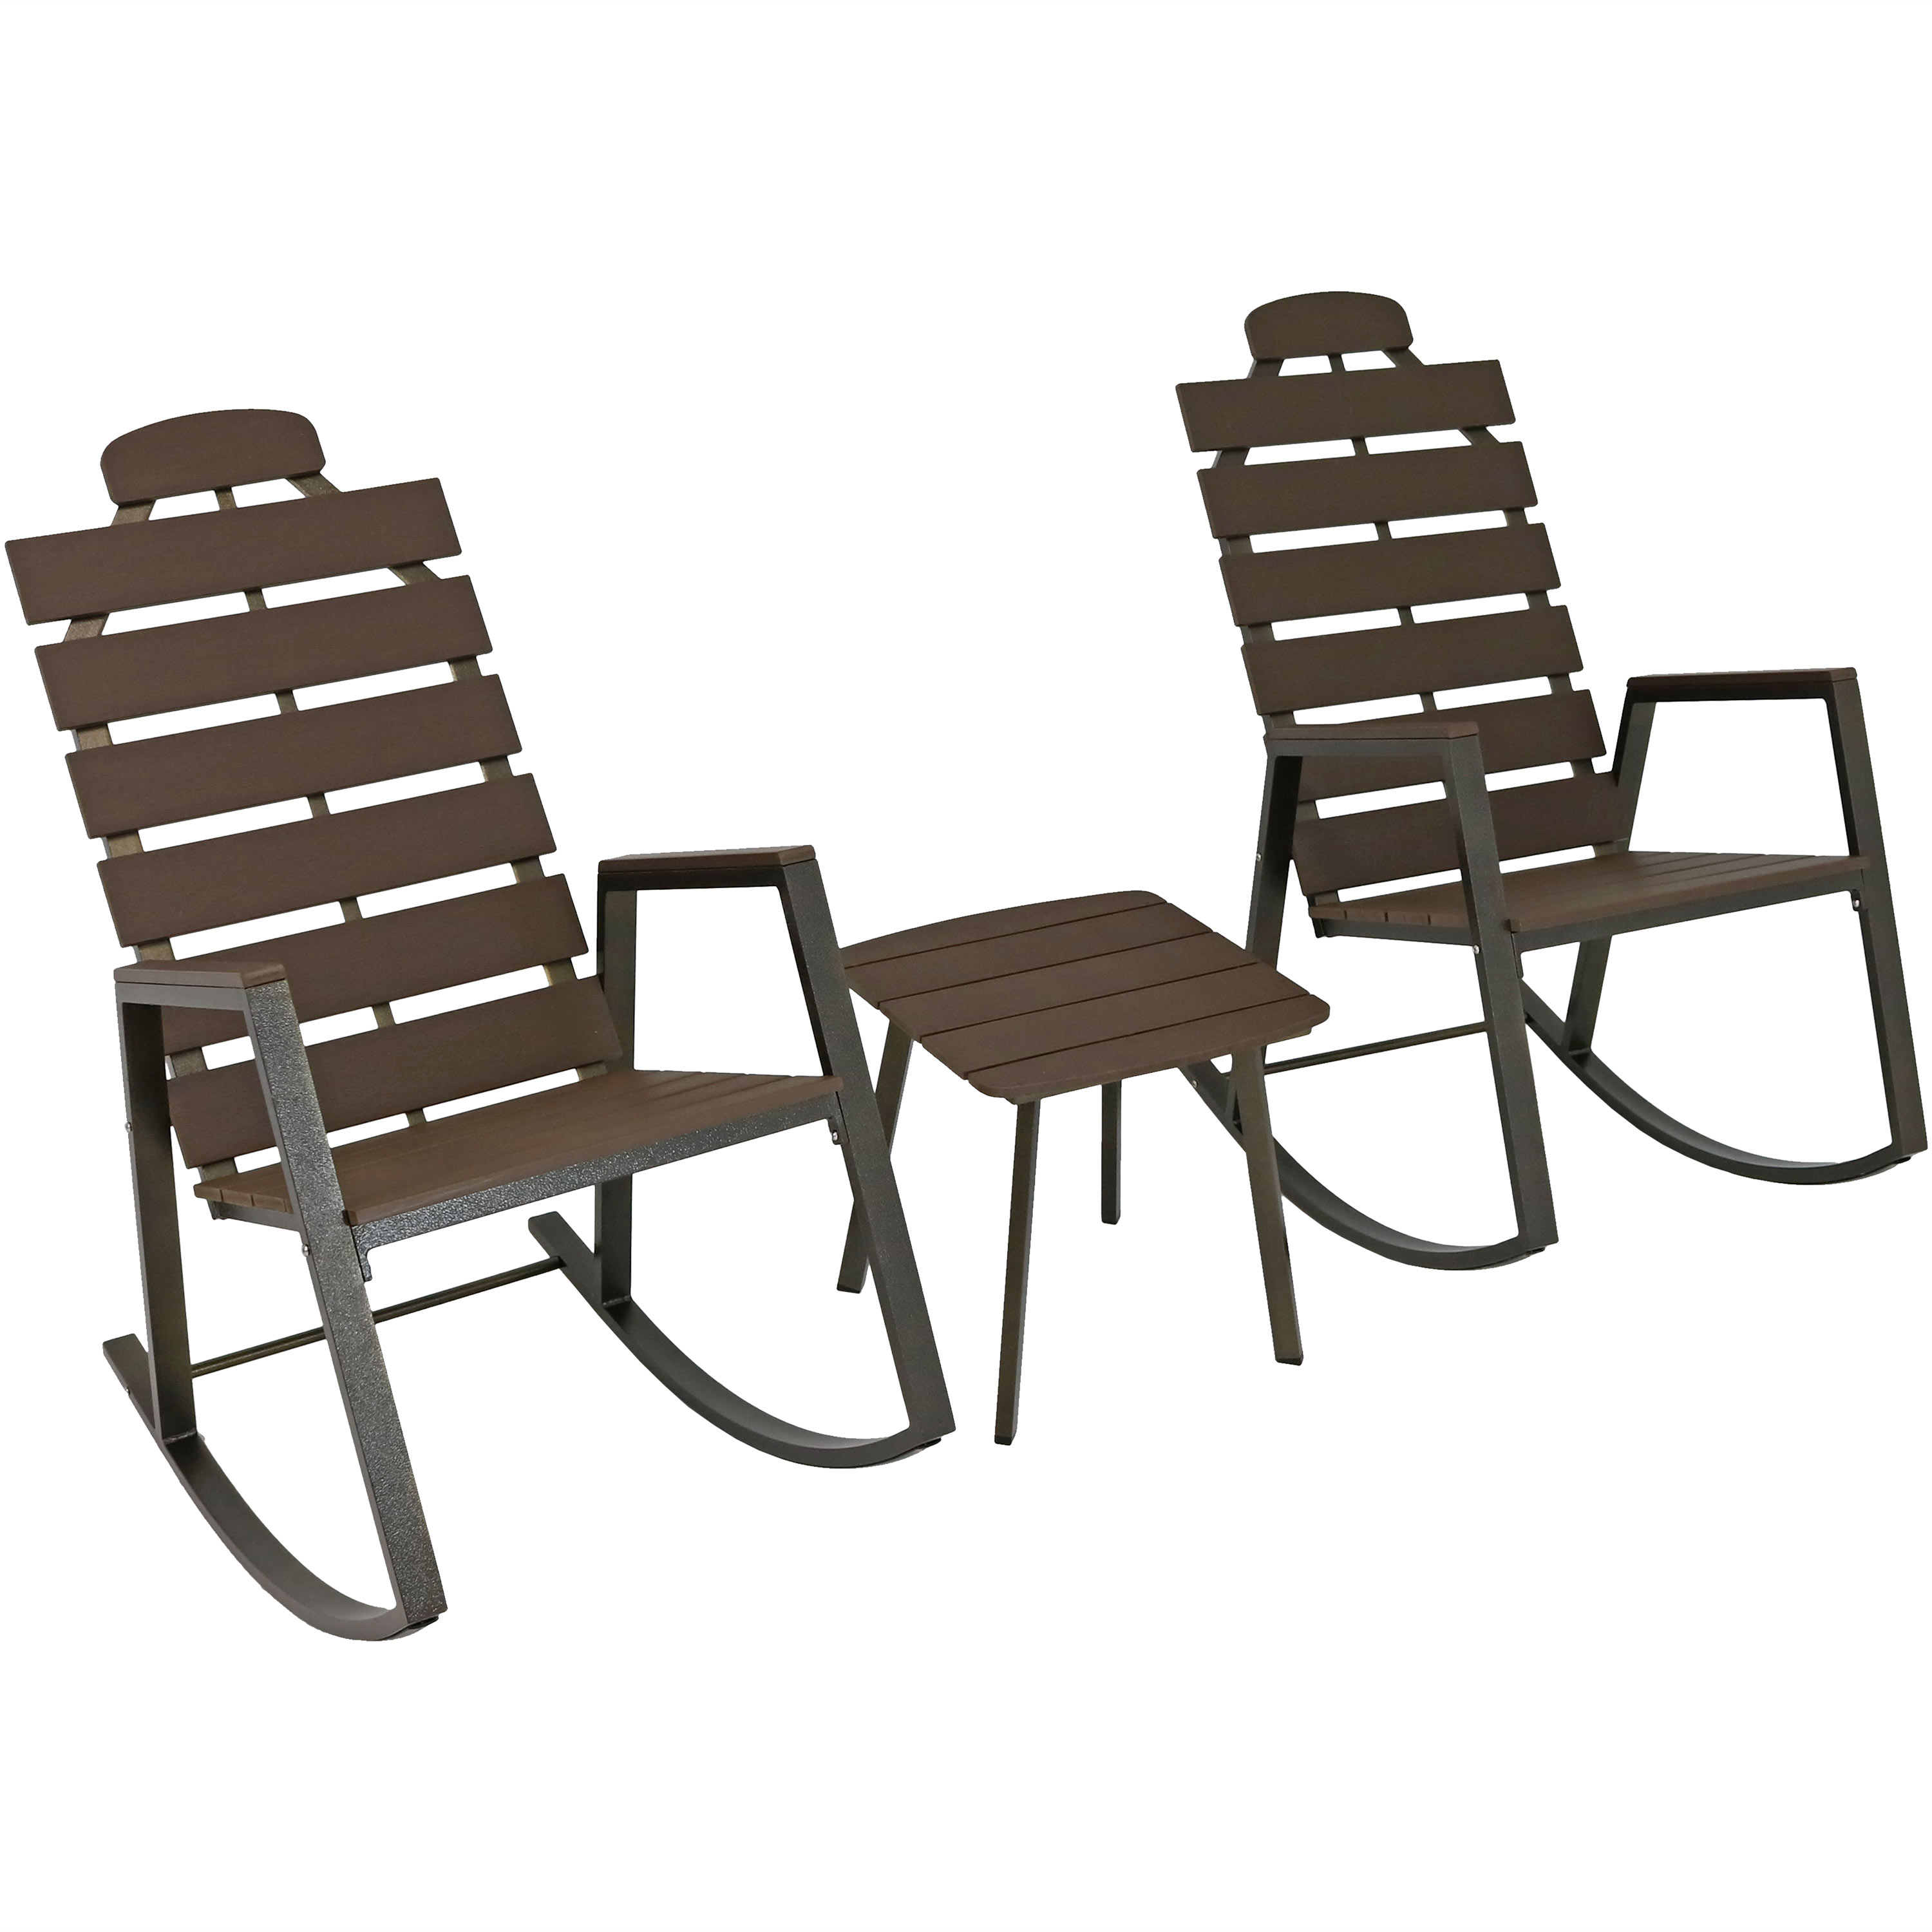 Slatted Patio Rocking Chairs Side Table Front Porch Set Faux Wood Design